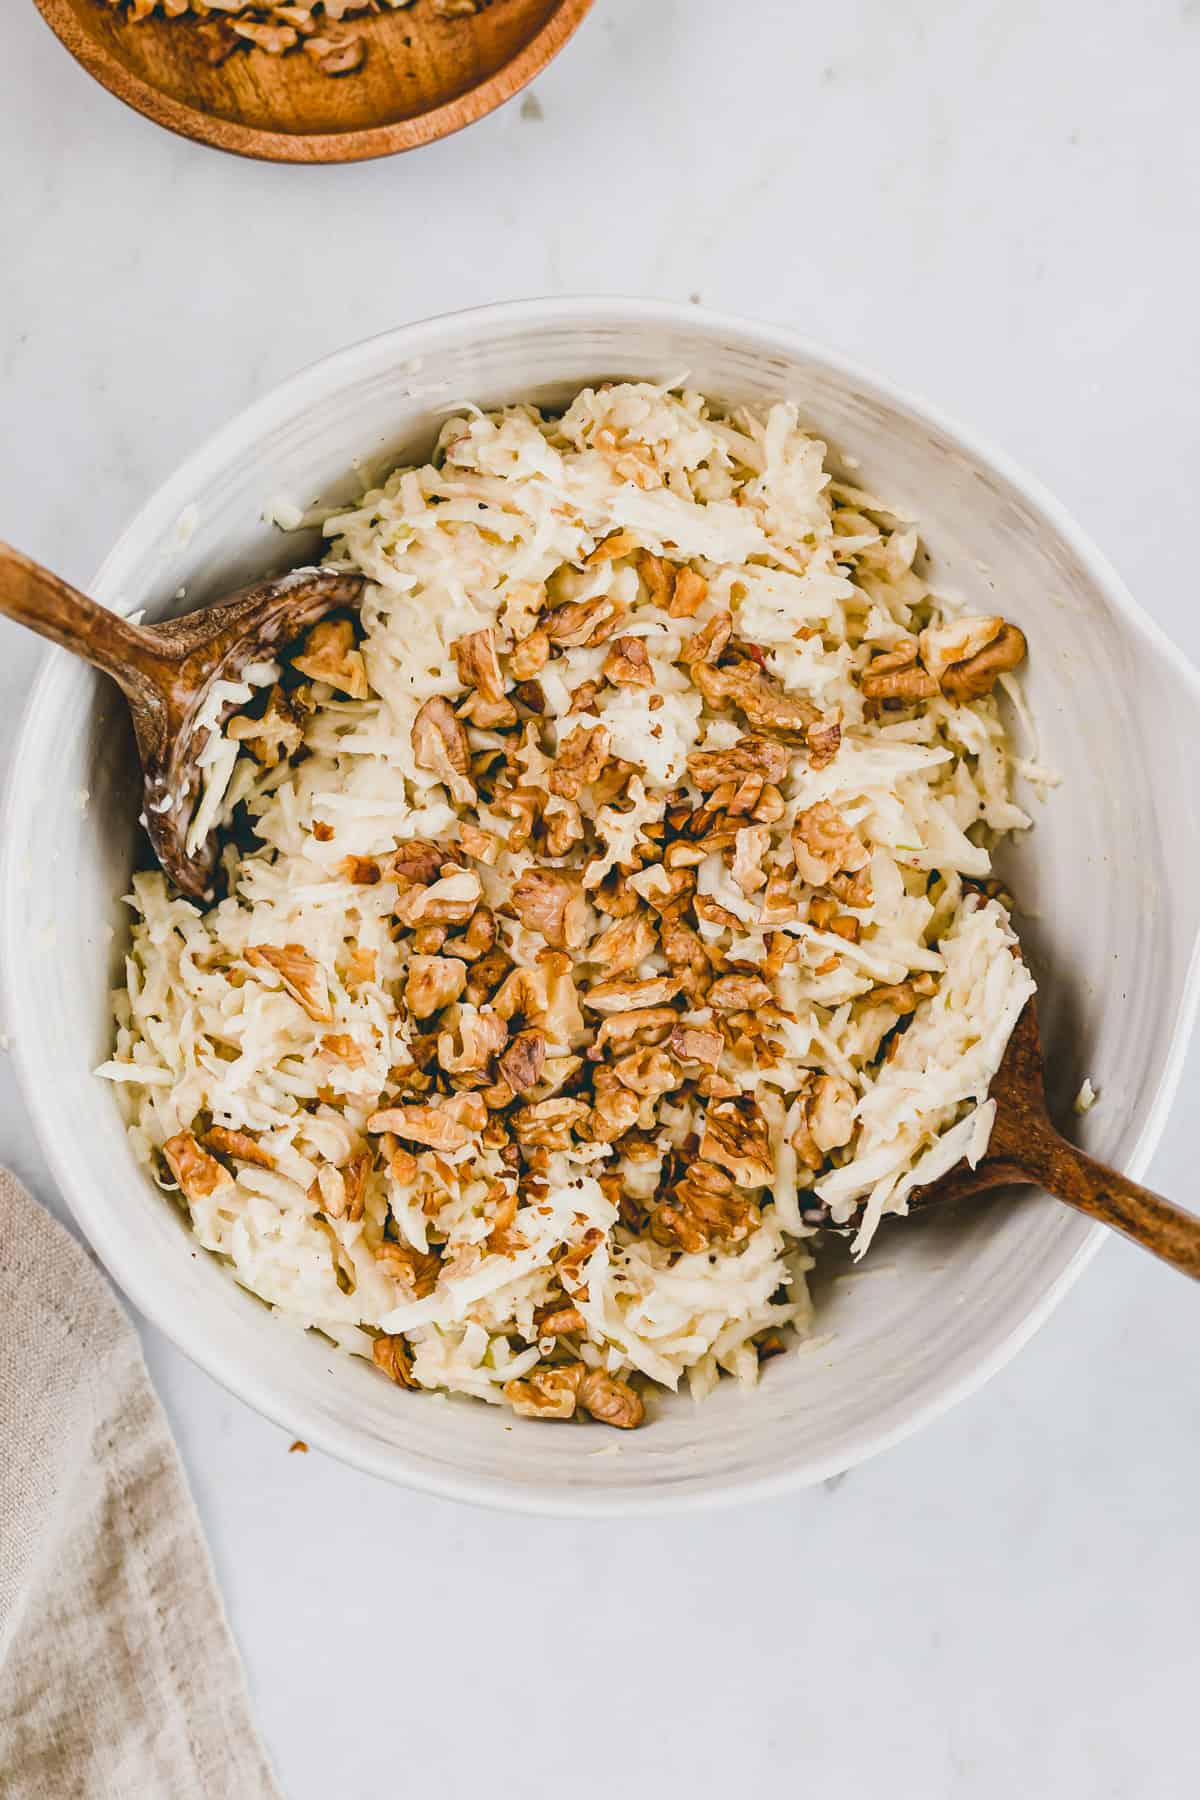 celeriac salad in a large bowl topped with walnuts